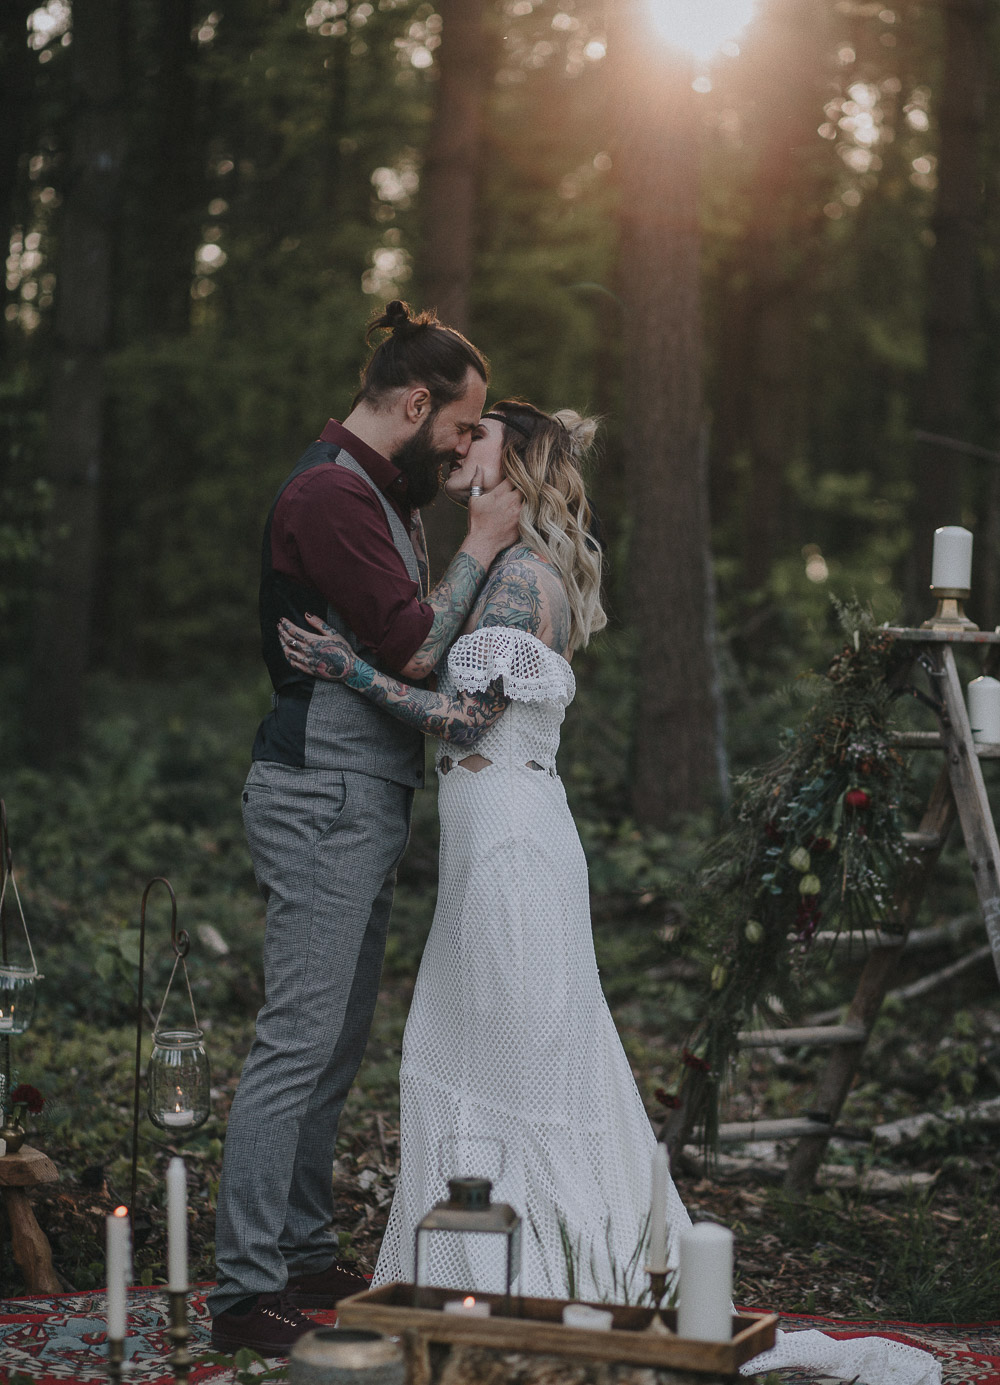 elopement ideas, elopement, alternative bride, autumn wedding, bearded groom, bohemian wedding, Bridal shoot, candles, cool bride, daughters of simone, festival bride, forrest wedding, oudoor wedding, rock bride, rustic charm, sunset wedding, tattooed bride, tattooed groom, Wedding inspiration, woodland wedding